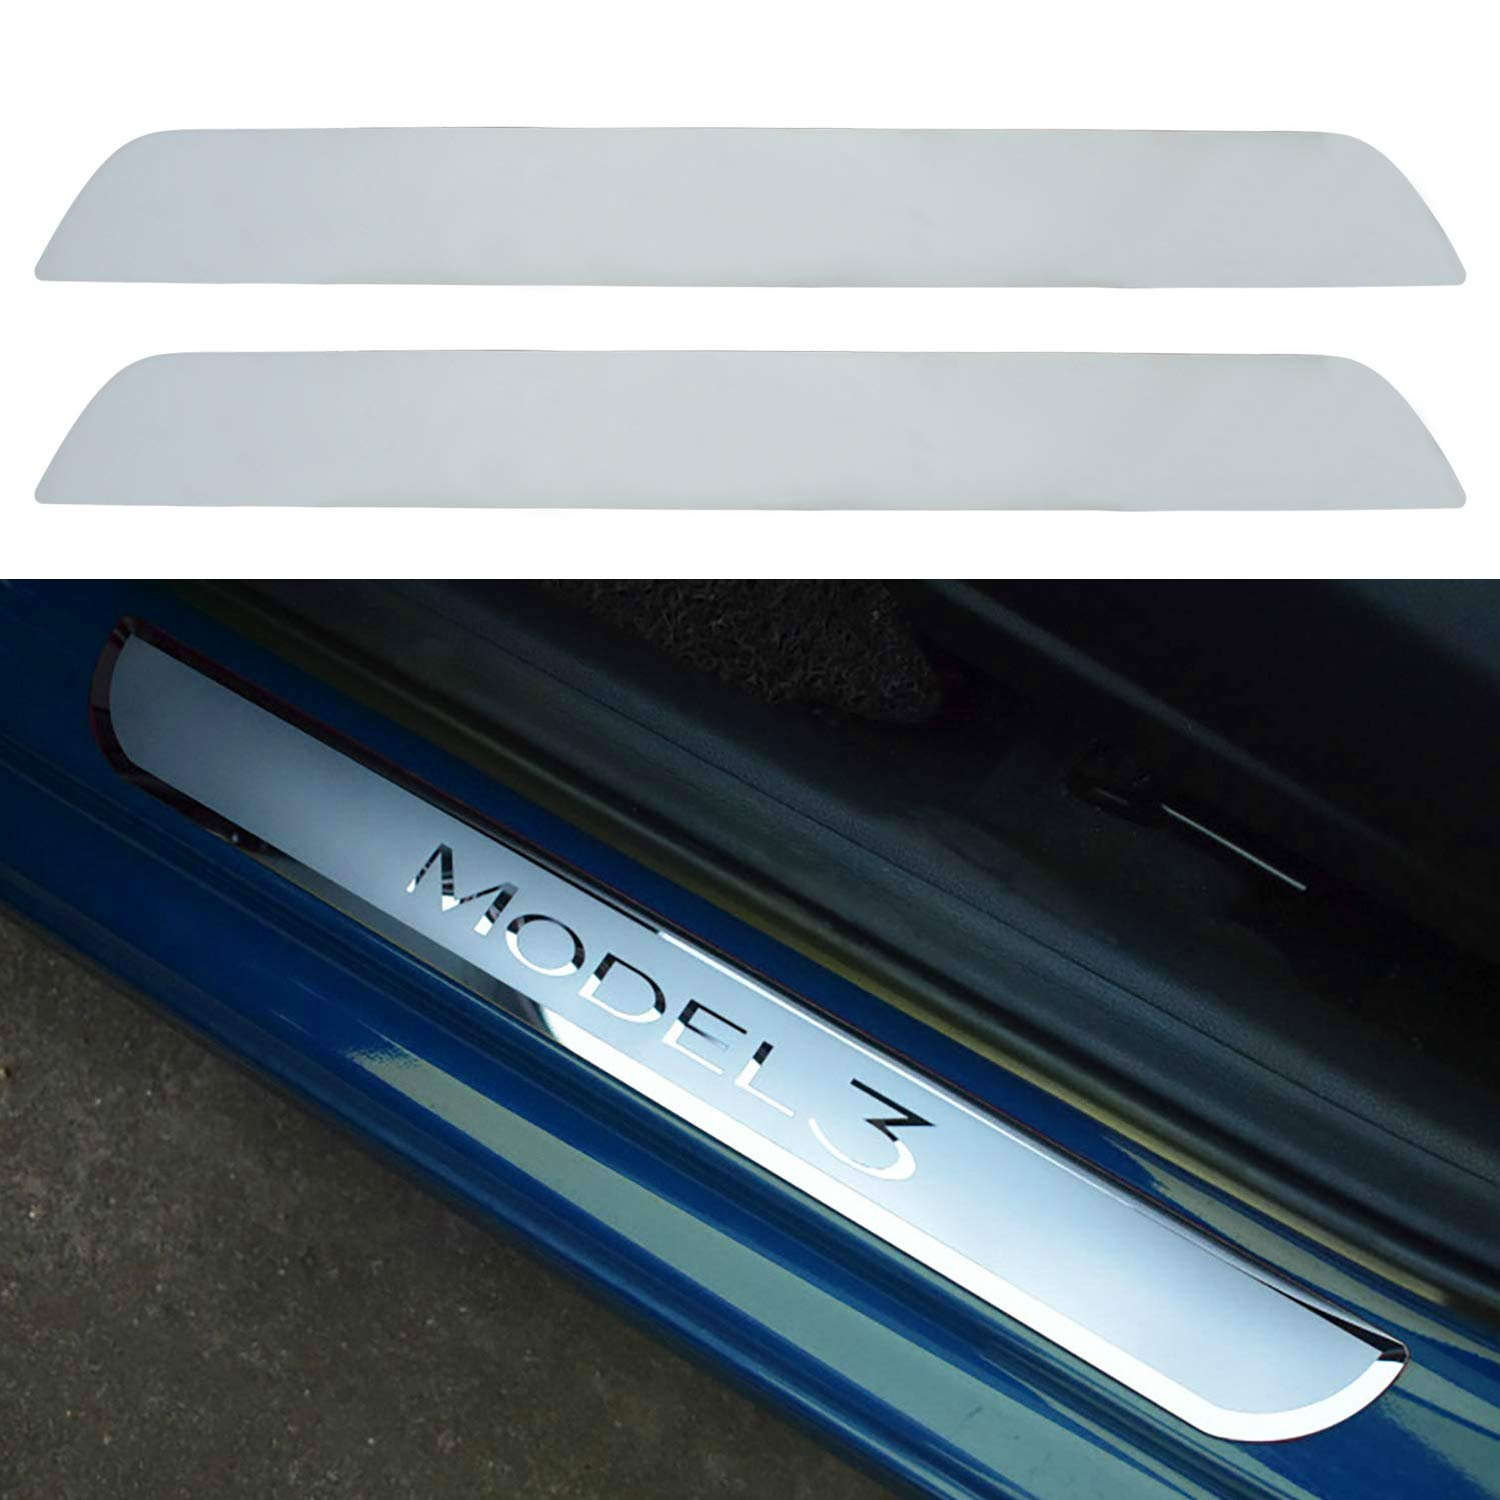 EDOU Tesla Model 3 Door Sill Protector,Sill Wrap Kit Protection Accessory for Tesla Model 3 Clear